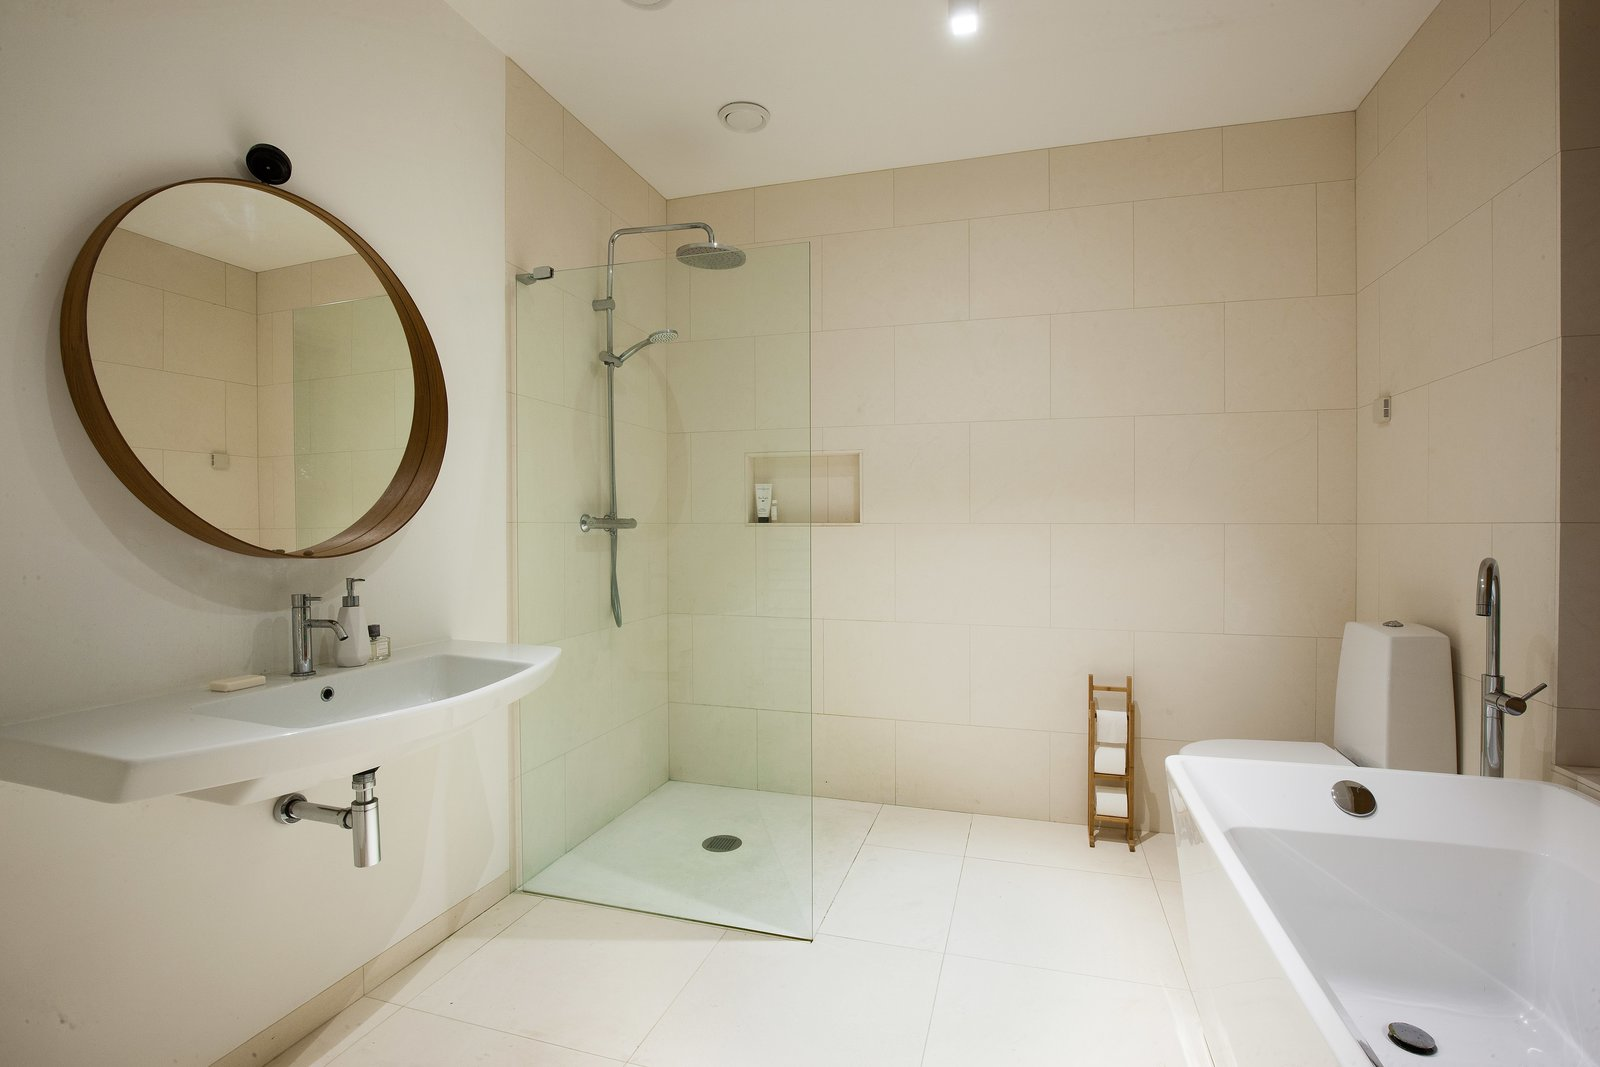 the minimalist bathroom design features an open shower and a freestanding tub tagged bath - Bathroom Designs With Freestanding Tubs